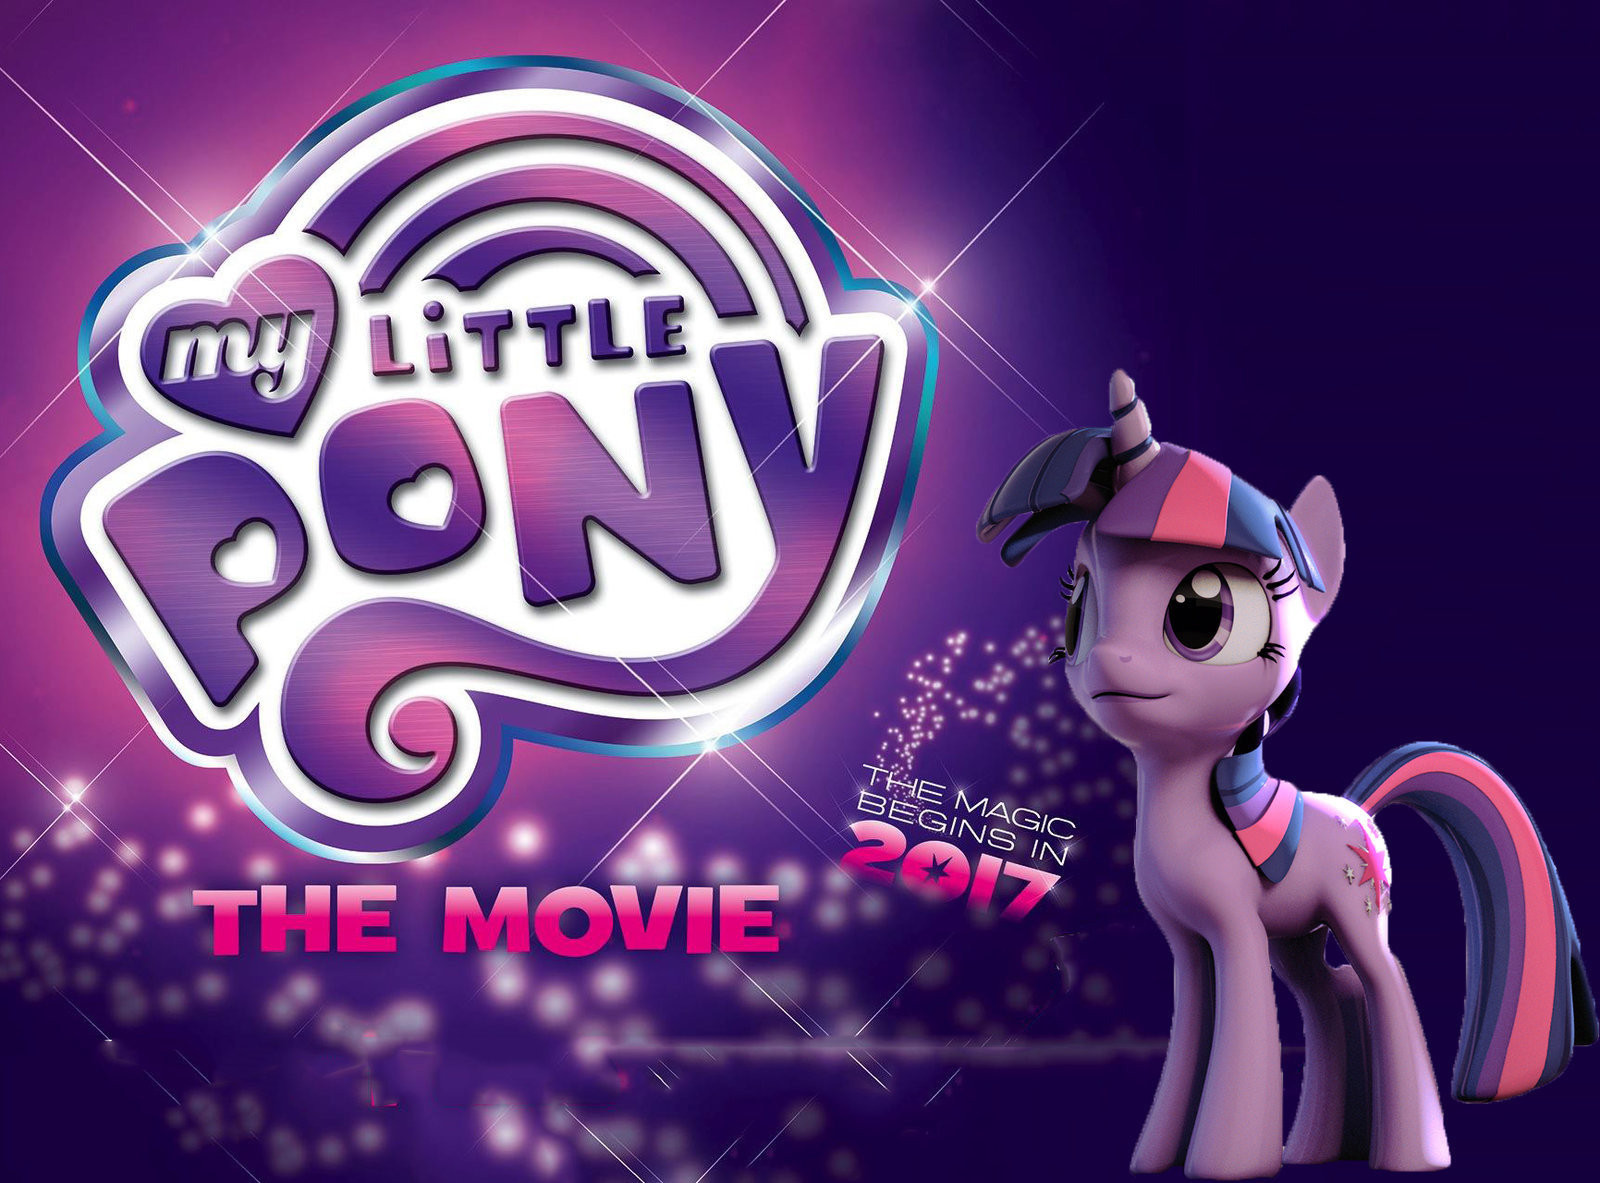 My Little Pony: The Movie date release